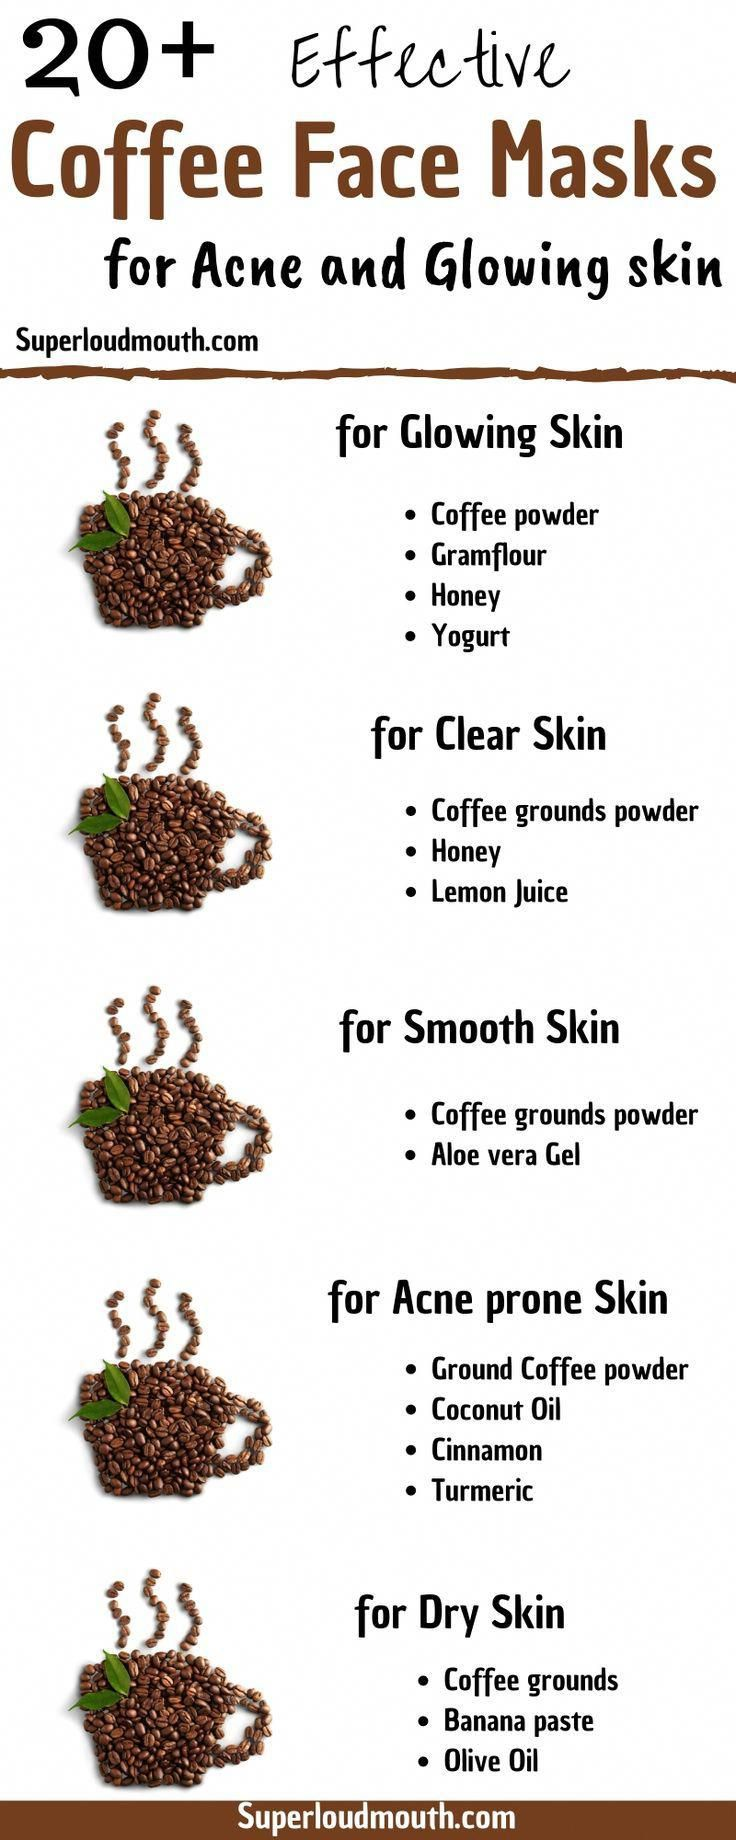 20+ Coffee face mask recipes for Acne, Glowing skin and other skin issues